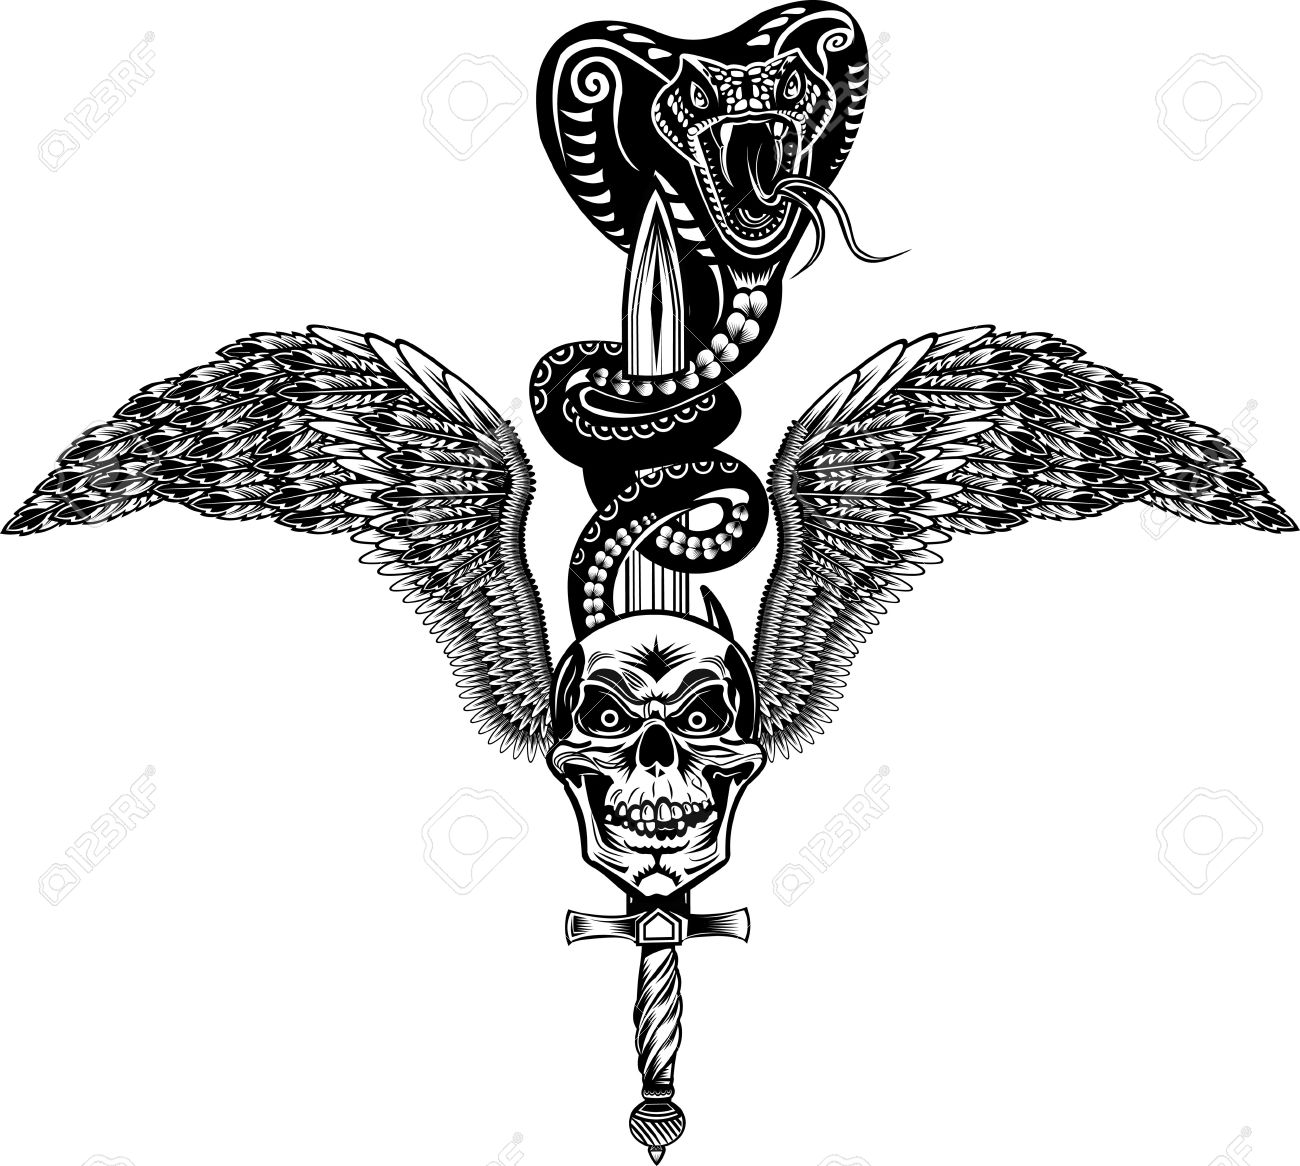 Name:  50056898-winged-skull-with-sword-and-snake-tattoo-cobra.jpg Views: 125 Size:  210.7 KB